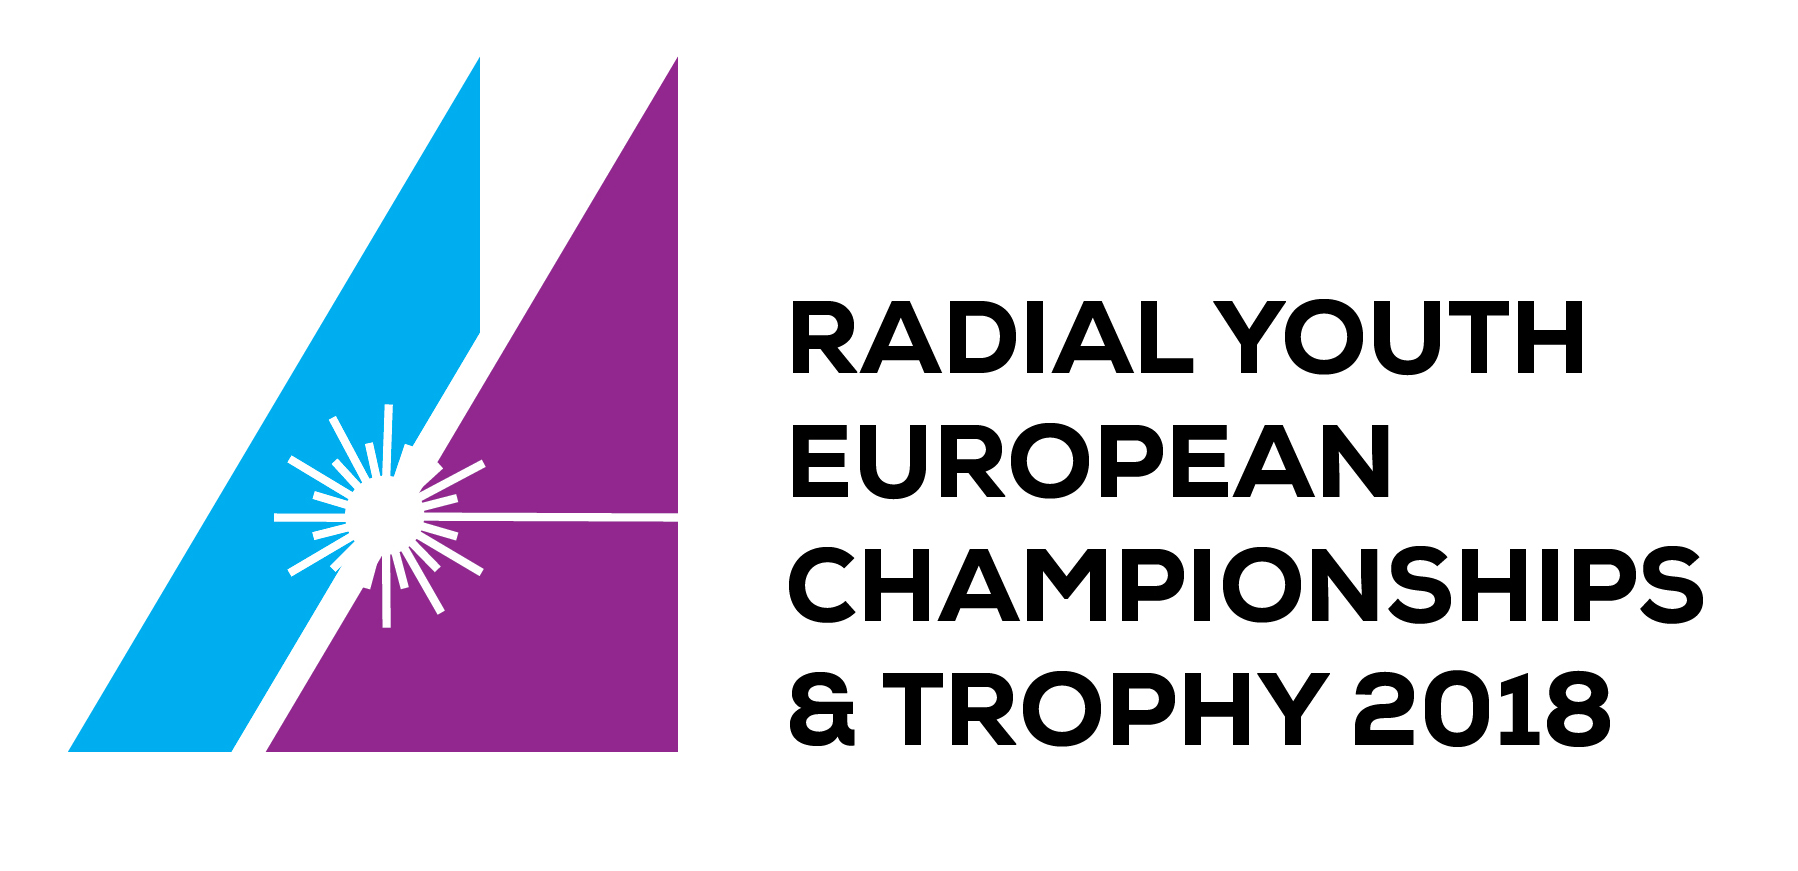 Radial Youth Europeans Championships & Trophy 2018